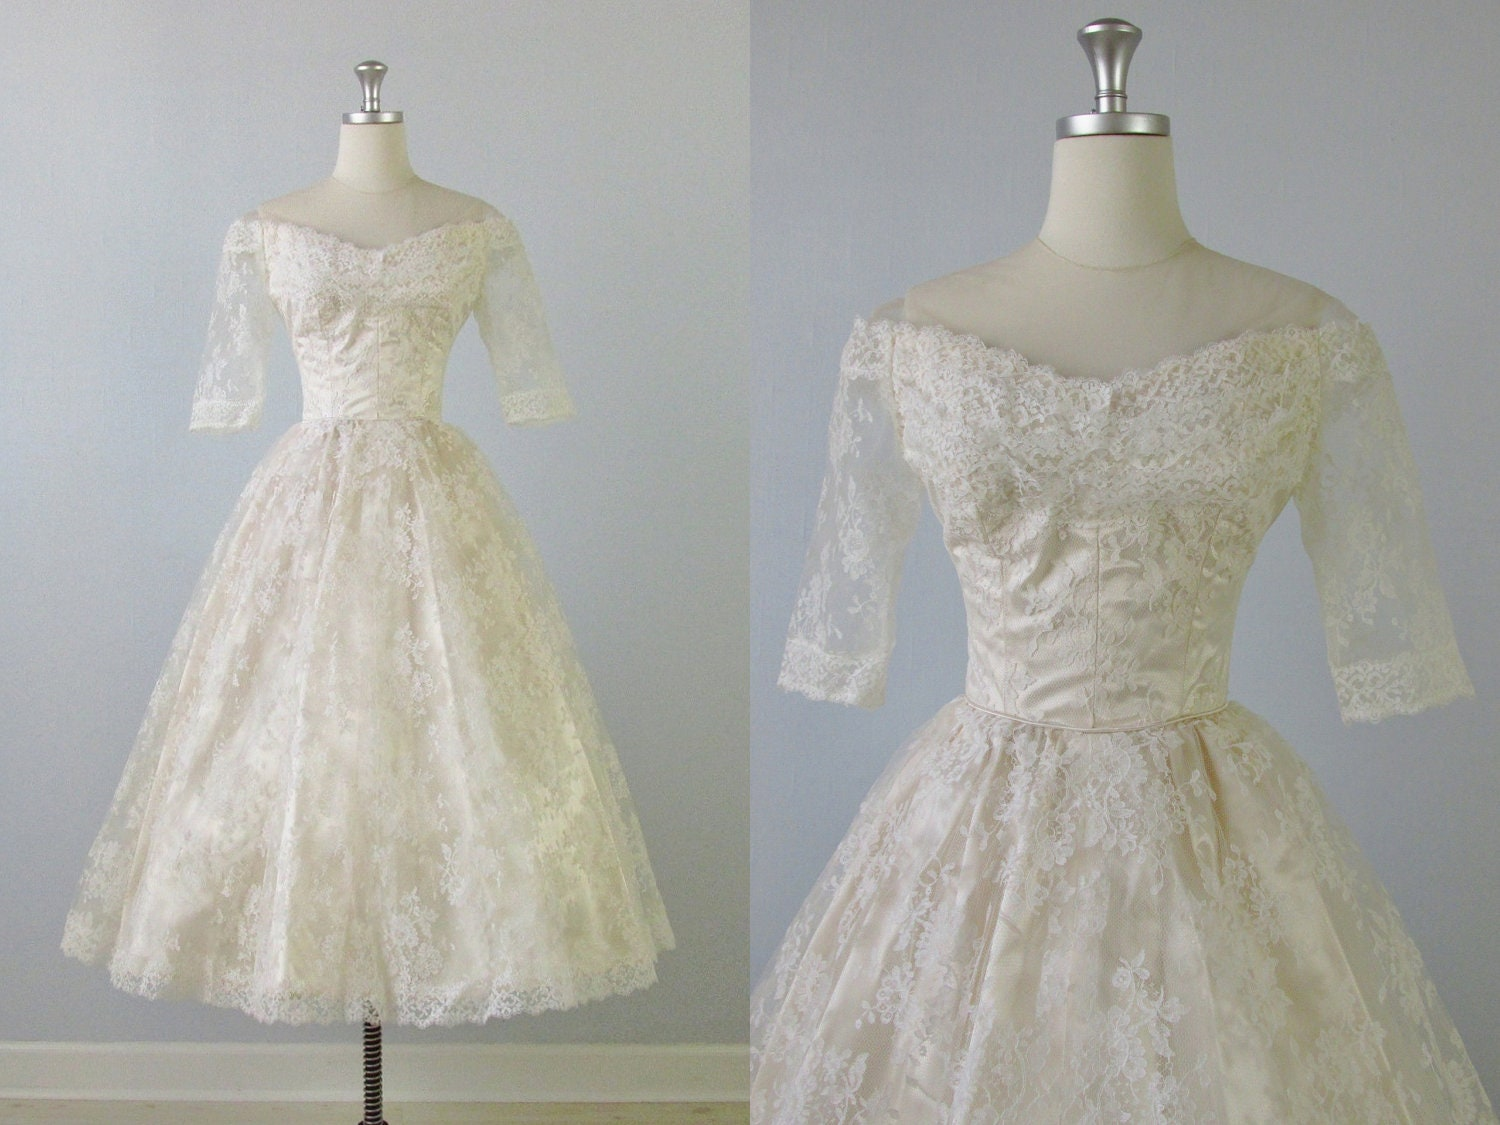 1950s wedding dress 50s tea length wedding dress pearl for 1950 wedding dresses tea length